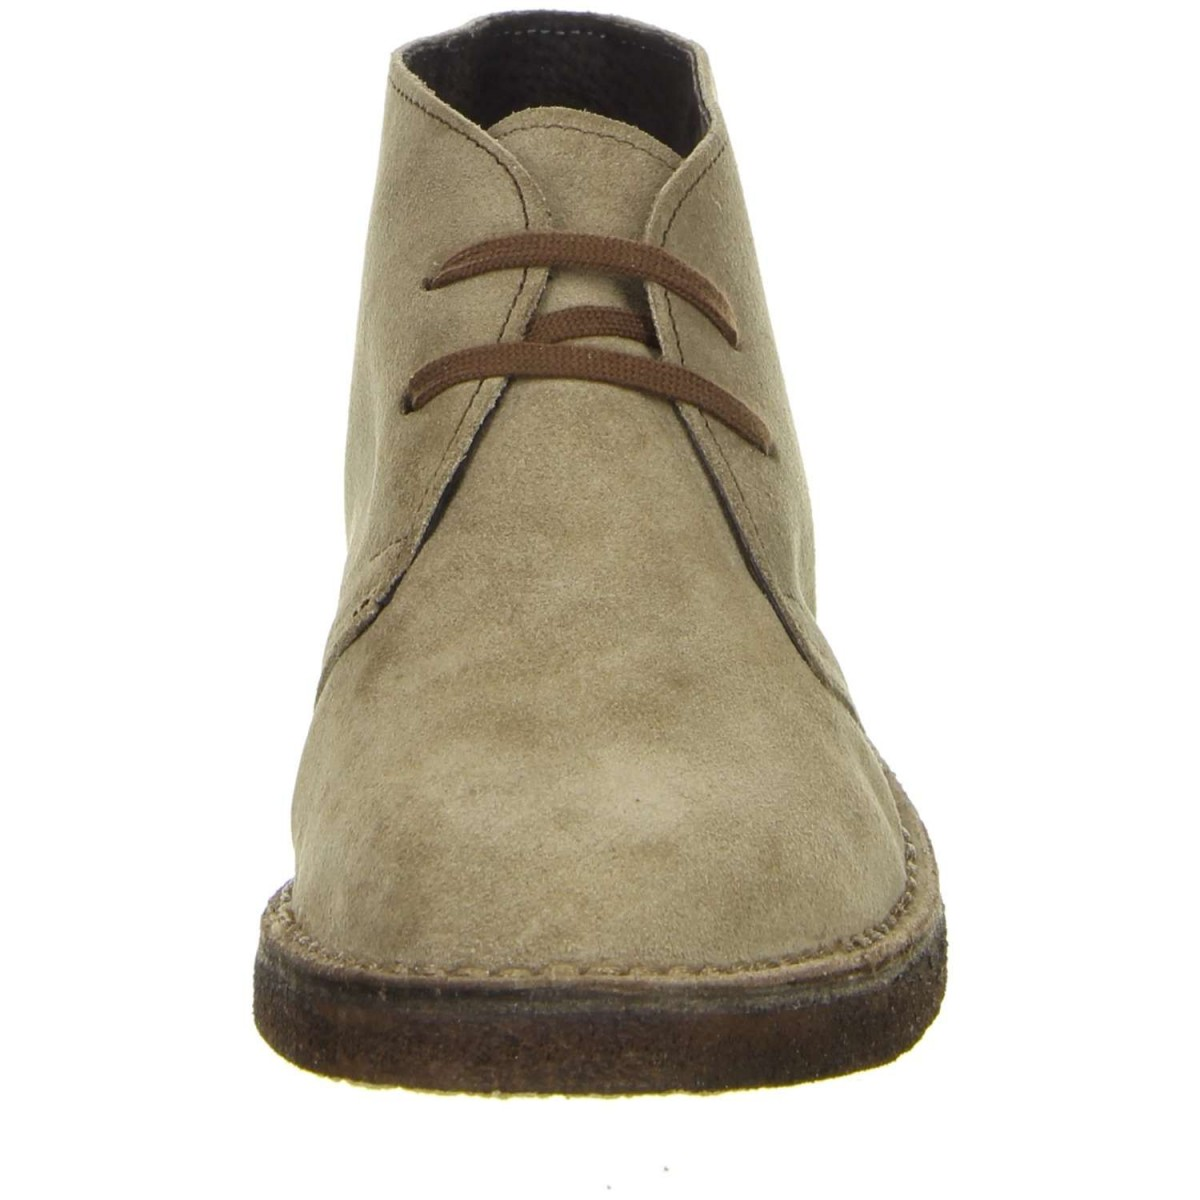 petros comfort damen herren desert boots beige herrenschuhe desert boot. Black Bedroom Furniture Sets. Home Design Ideas